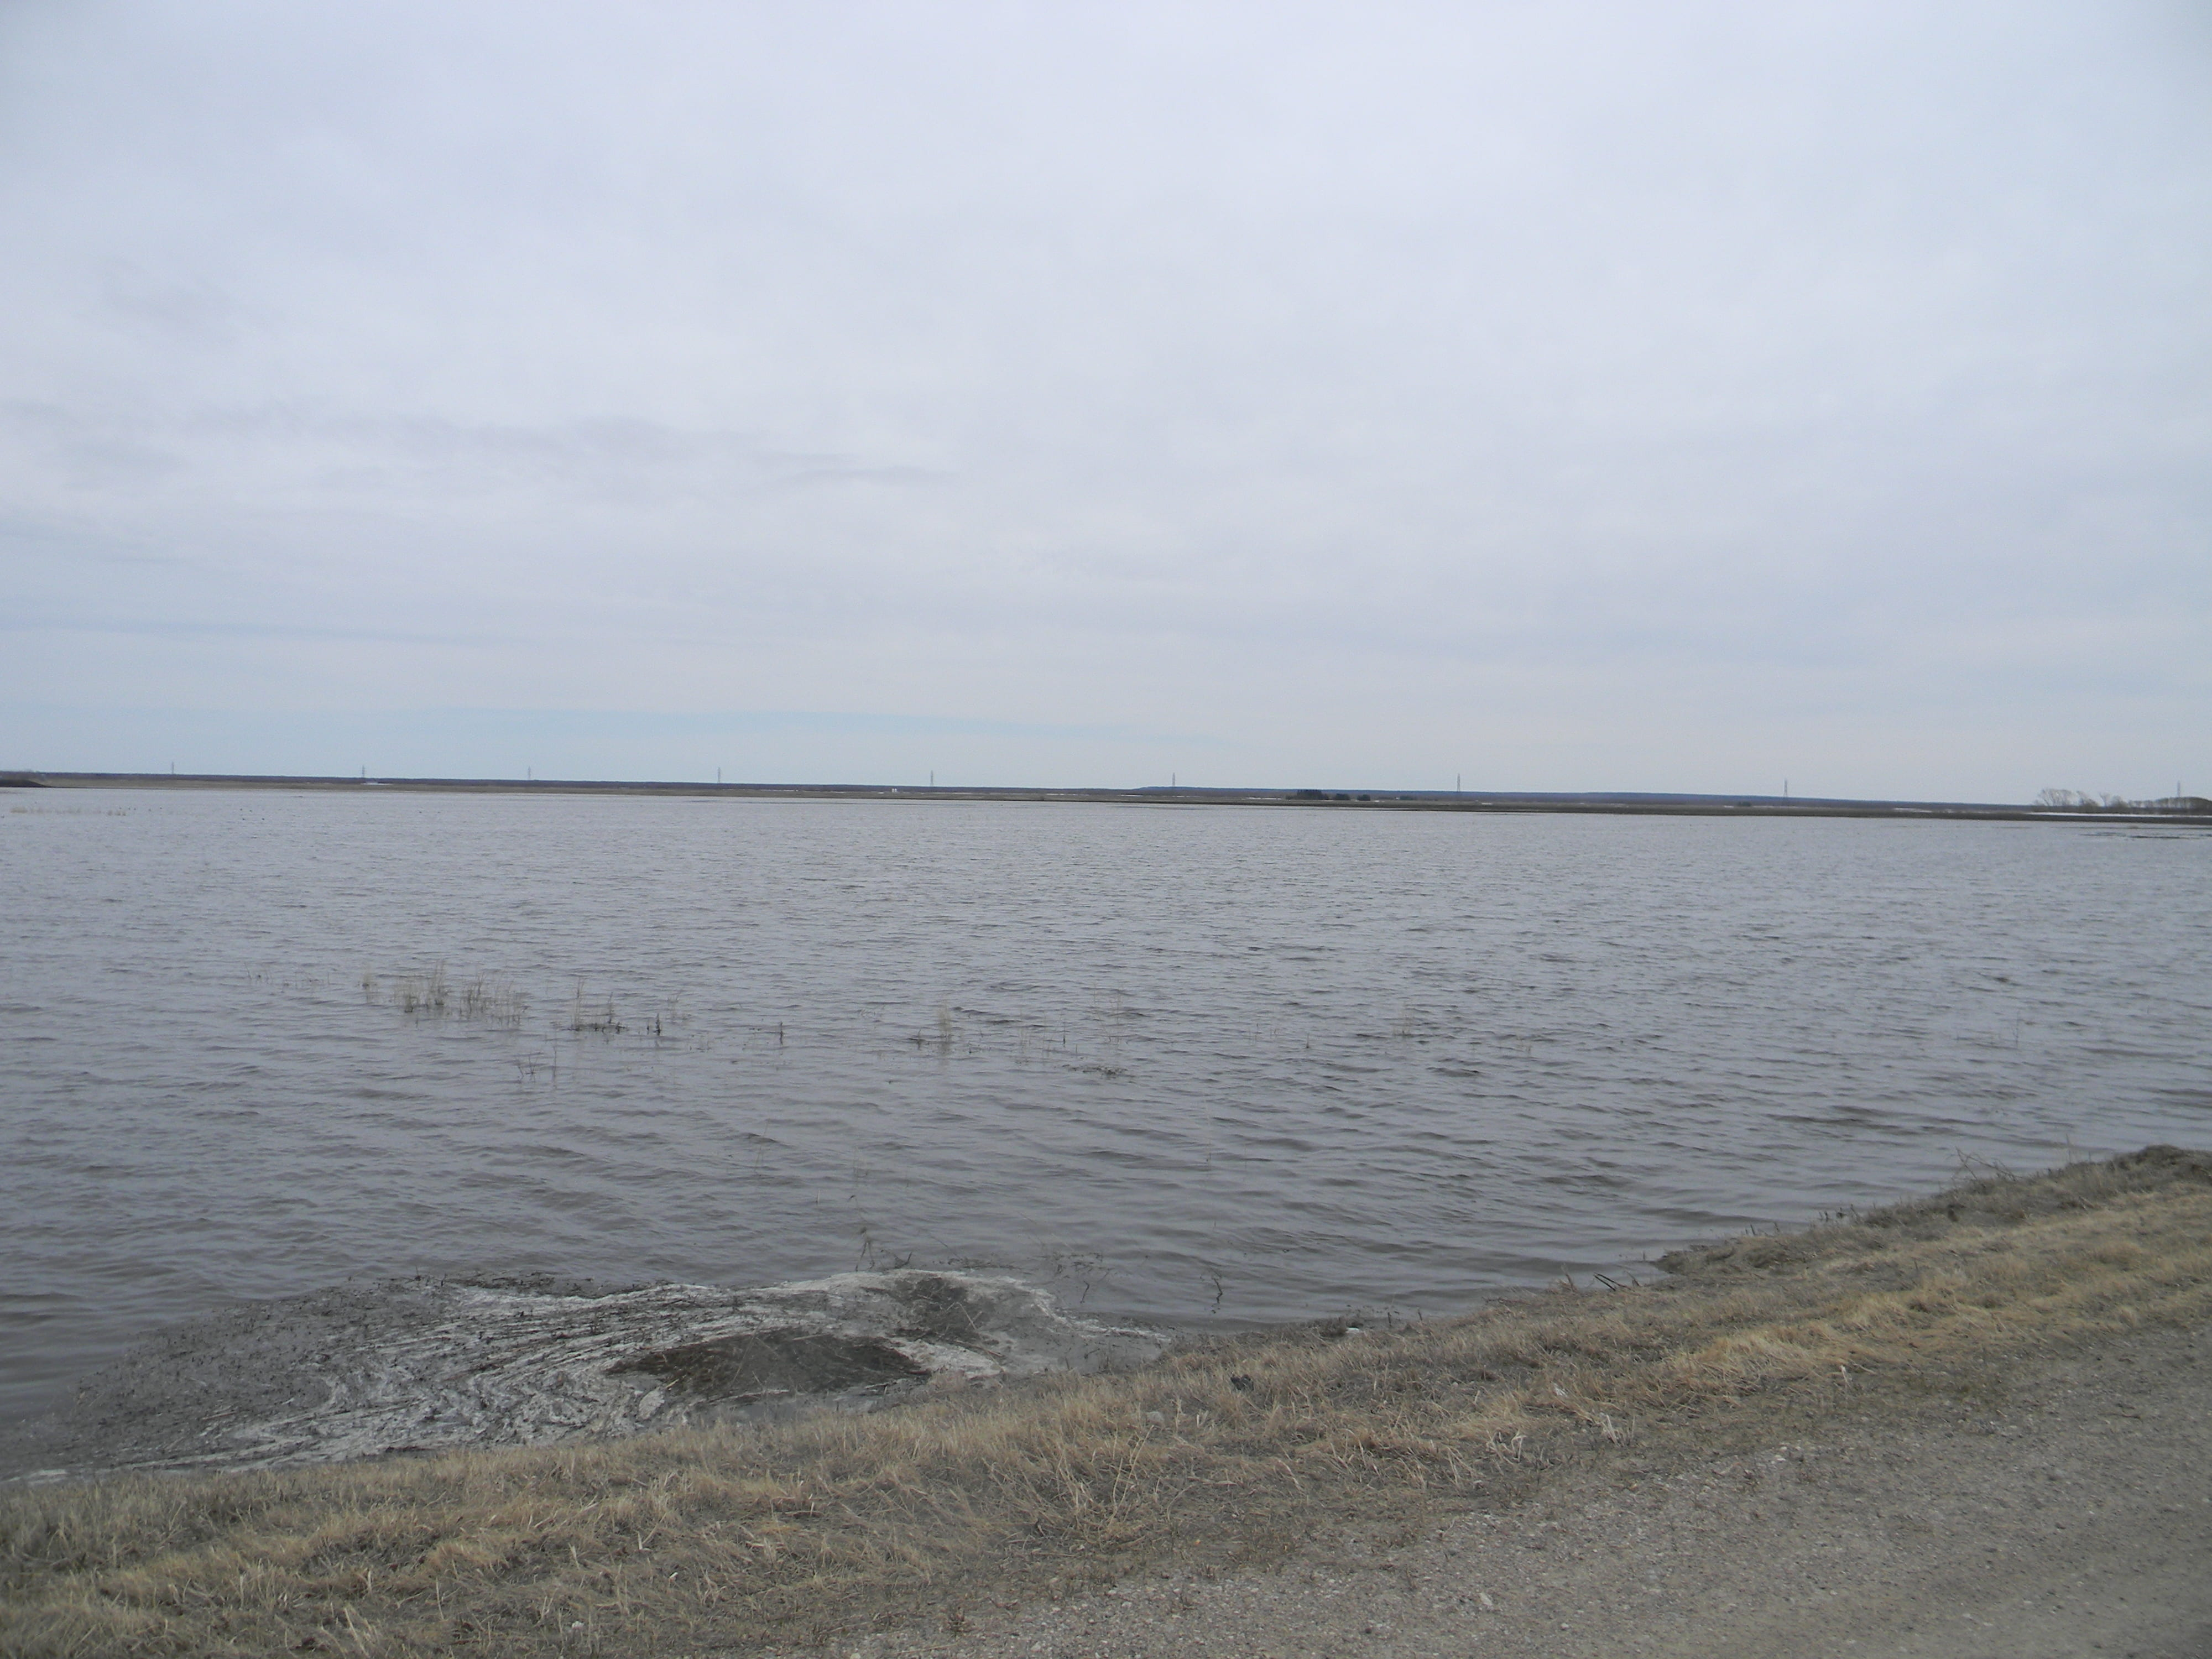 Catfish Creek Watershed, 29 April 2013 - This lake is in fact a farm field